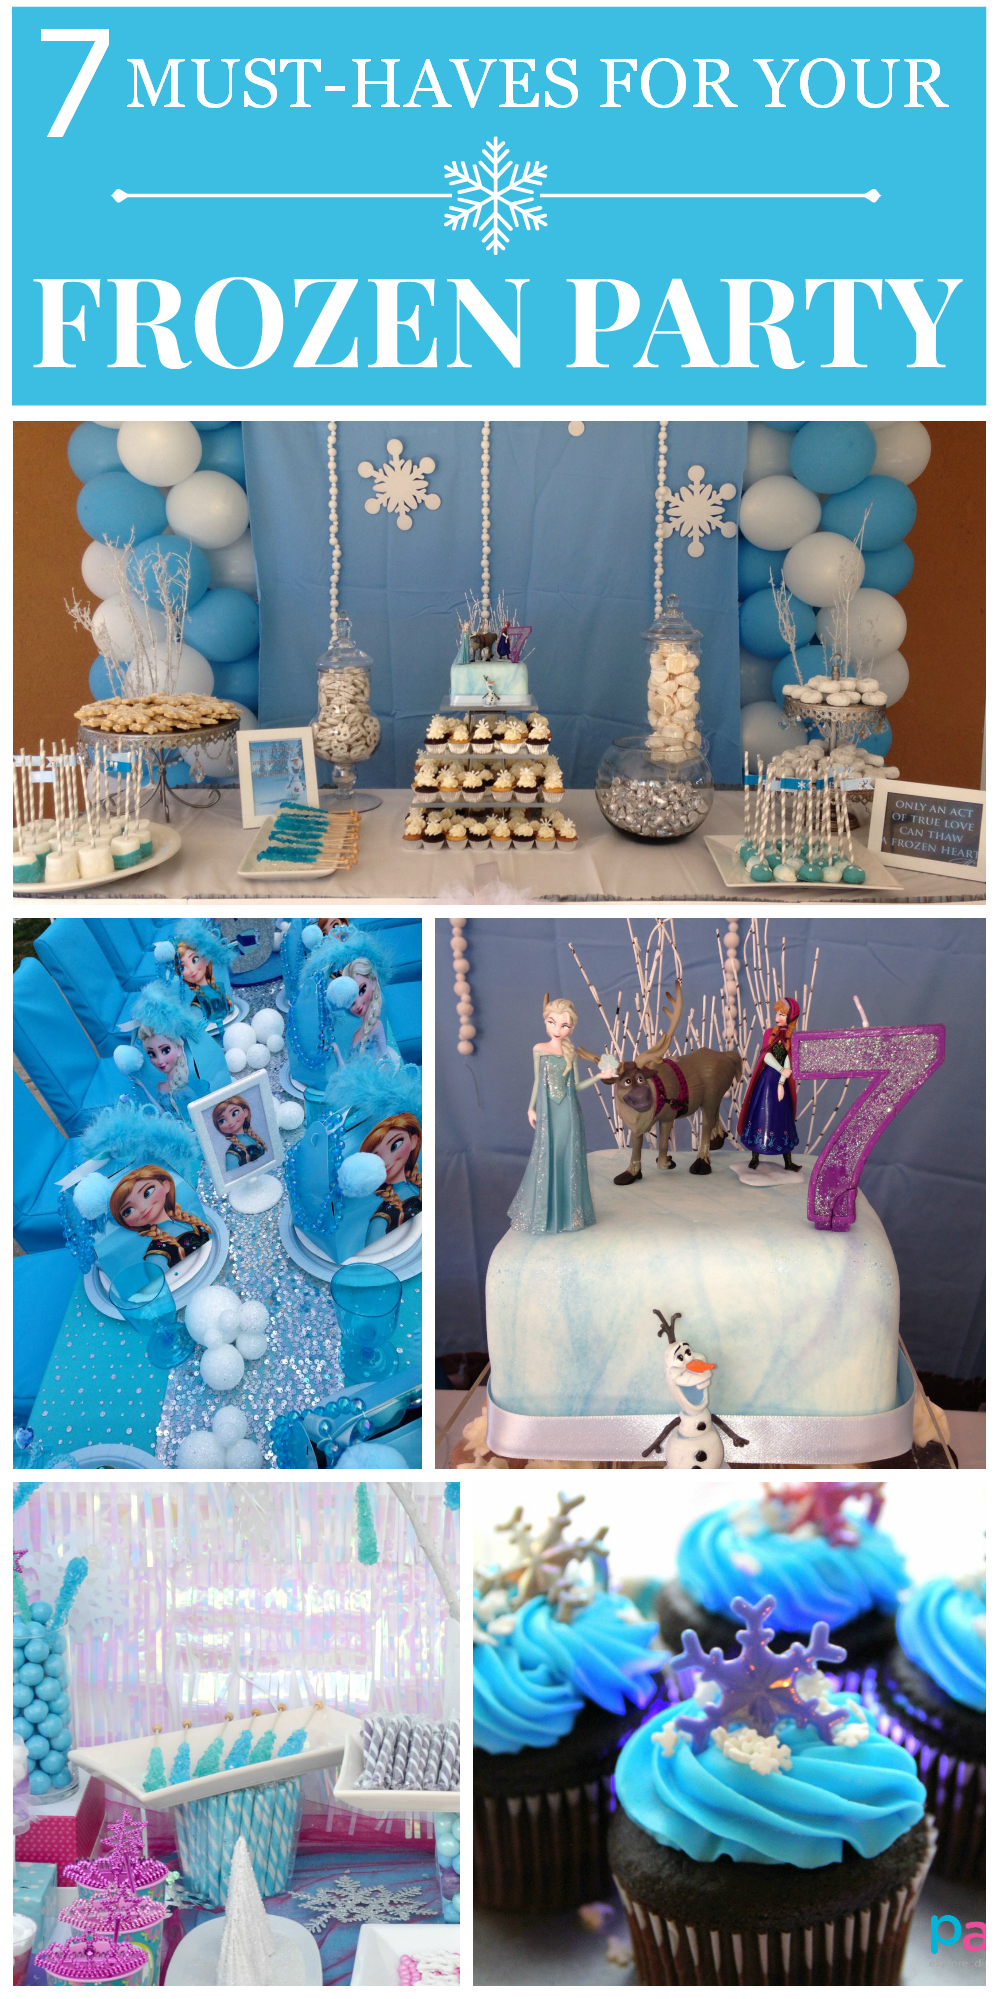 7 Things You Must Have At Your Frozen Party Catch My Party